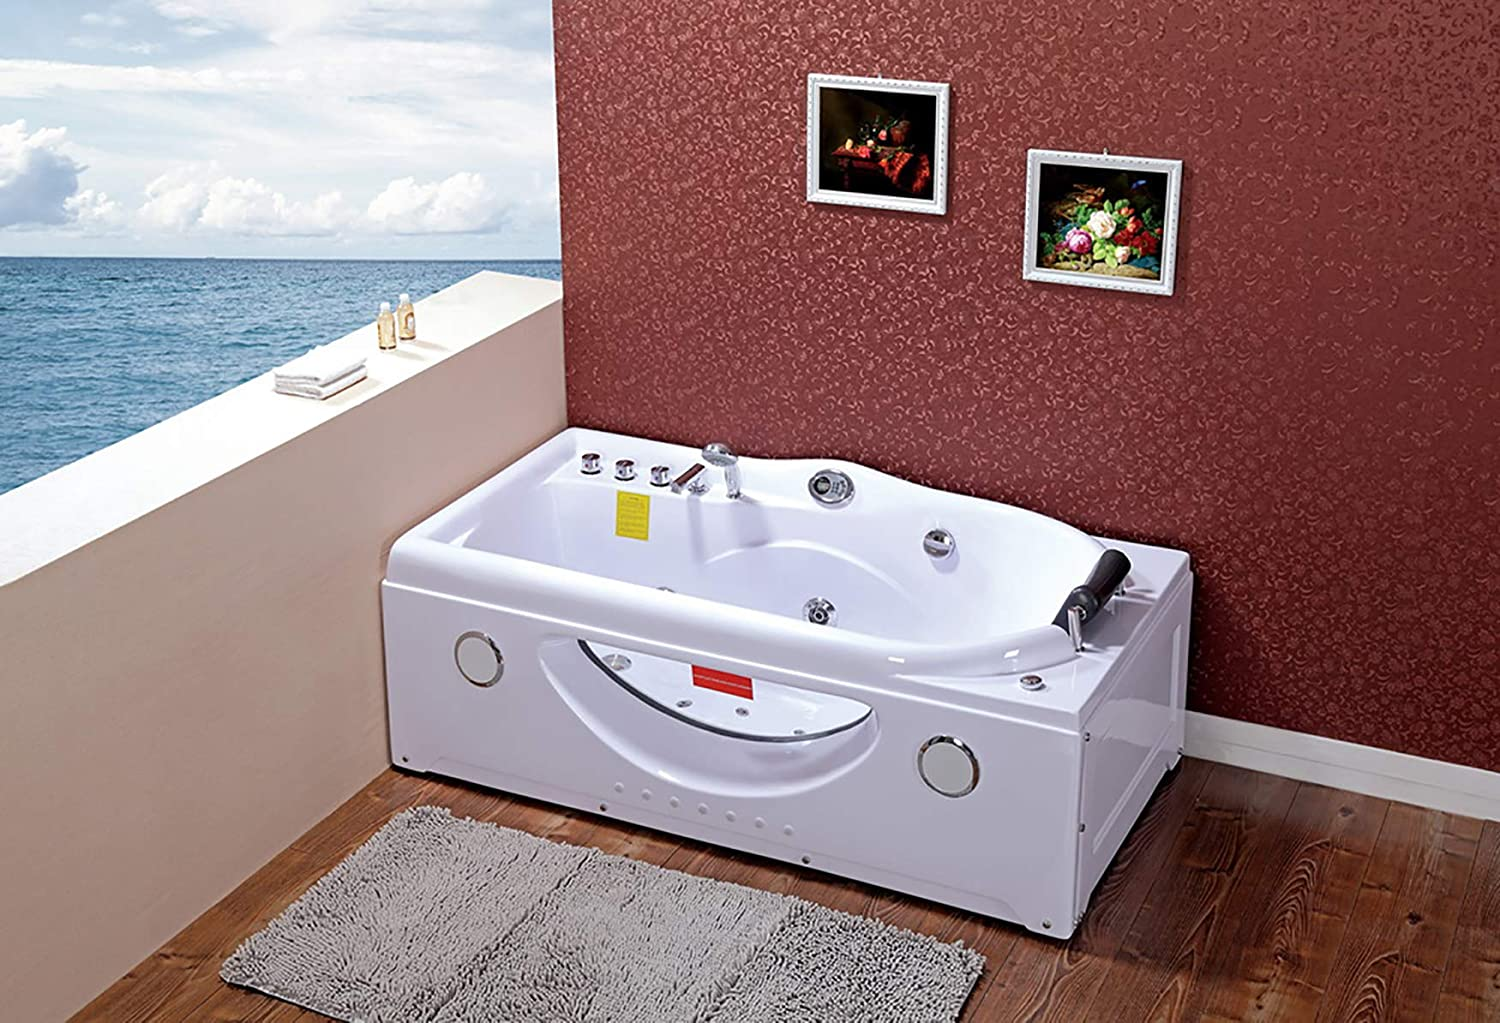 Whirlpool Bath Jacuzzi Massage Jets Shower Double Ended Rectangle Bathtub SPA 168x85 cm jagpol